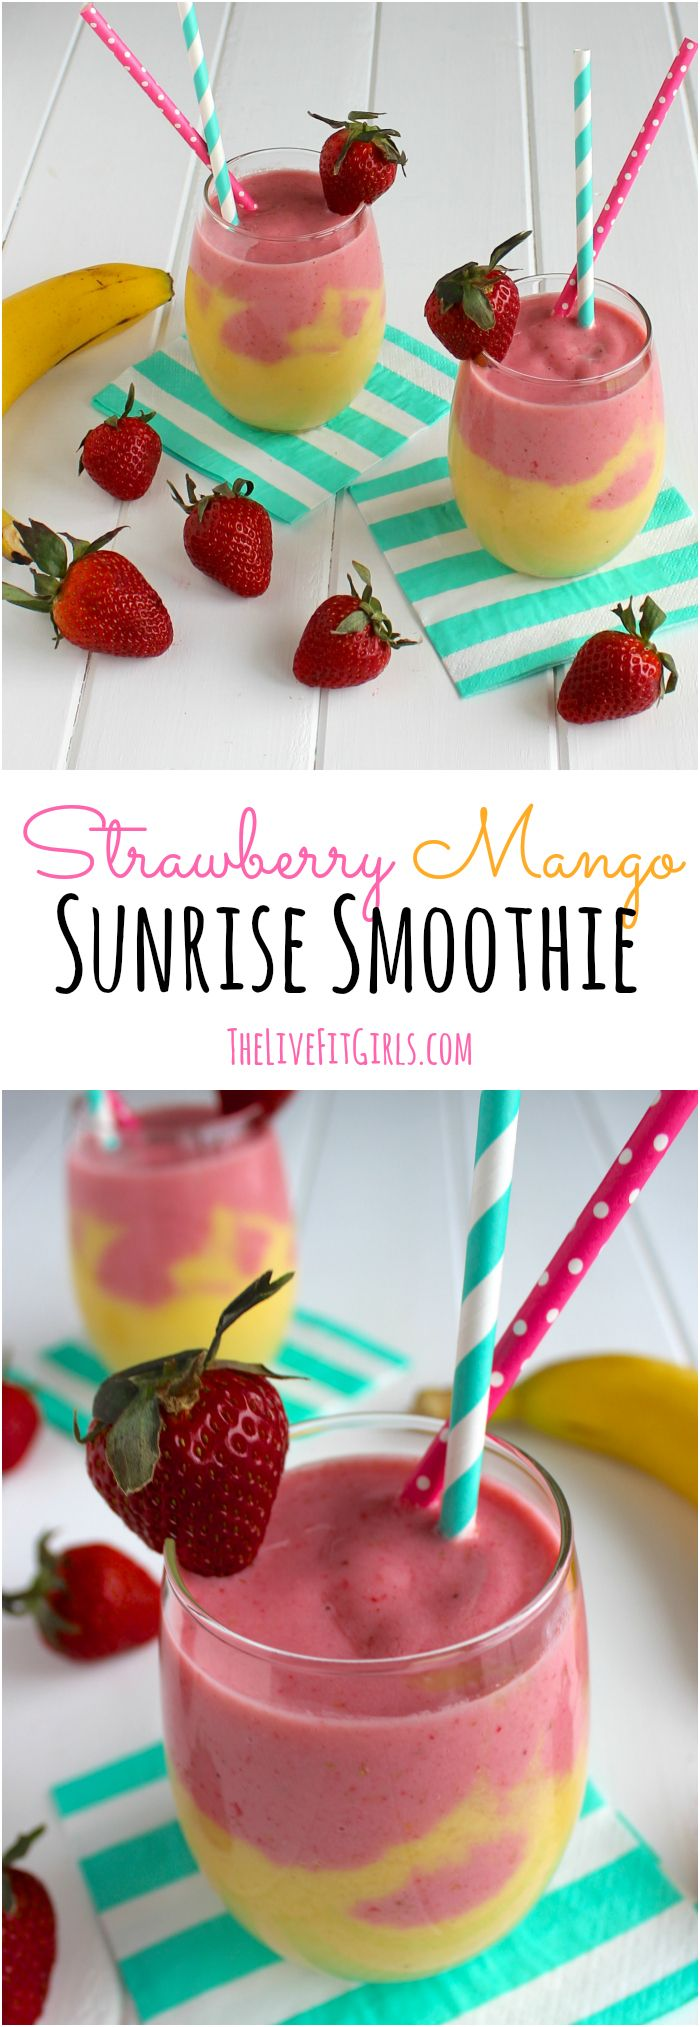 Power up your morning with this high-protein Strawberry Mango Sunrise Smoothie!